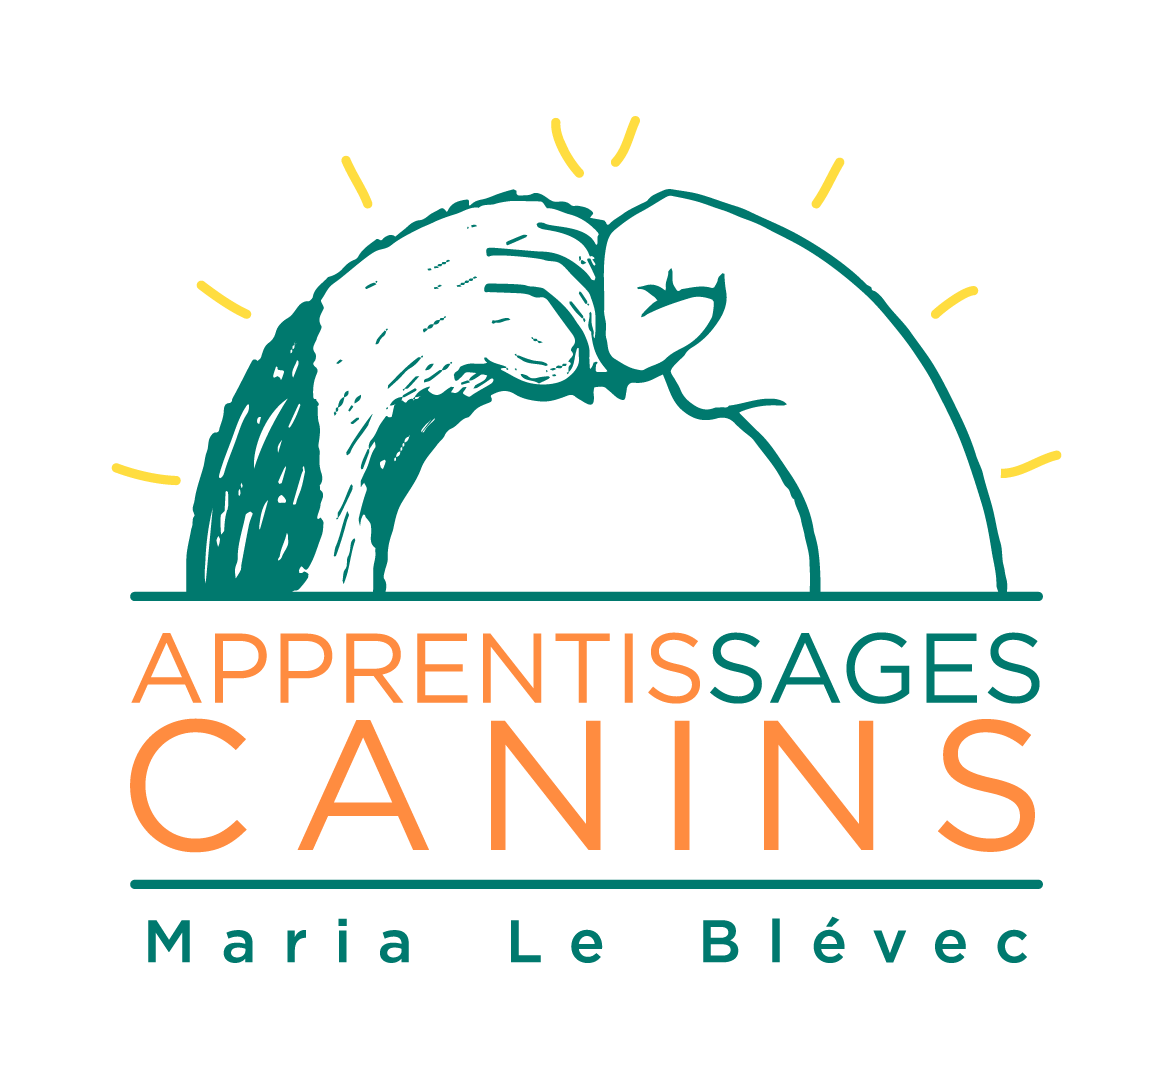 ApprentisSages Canins